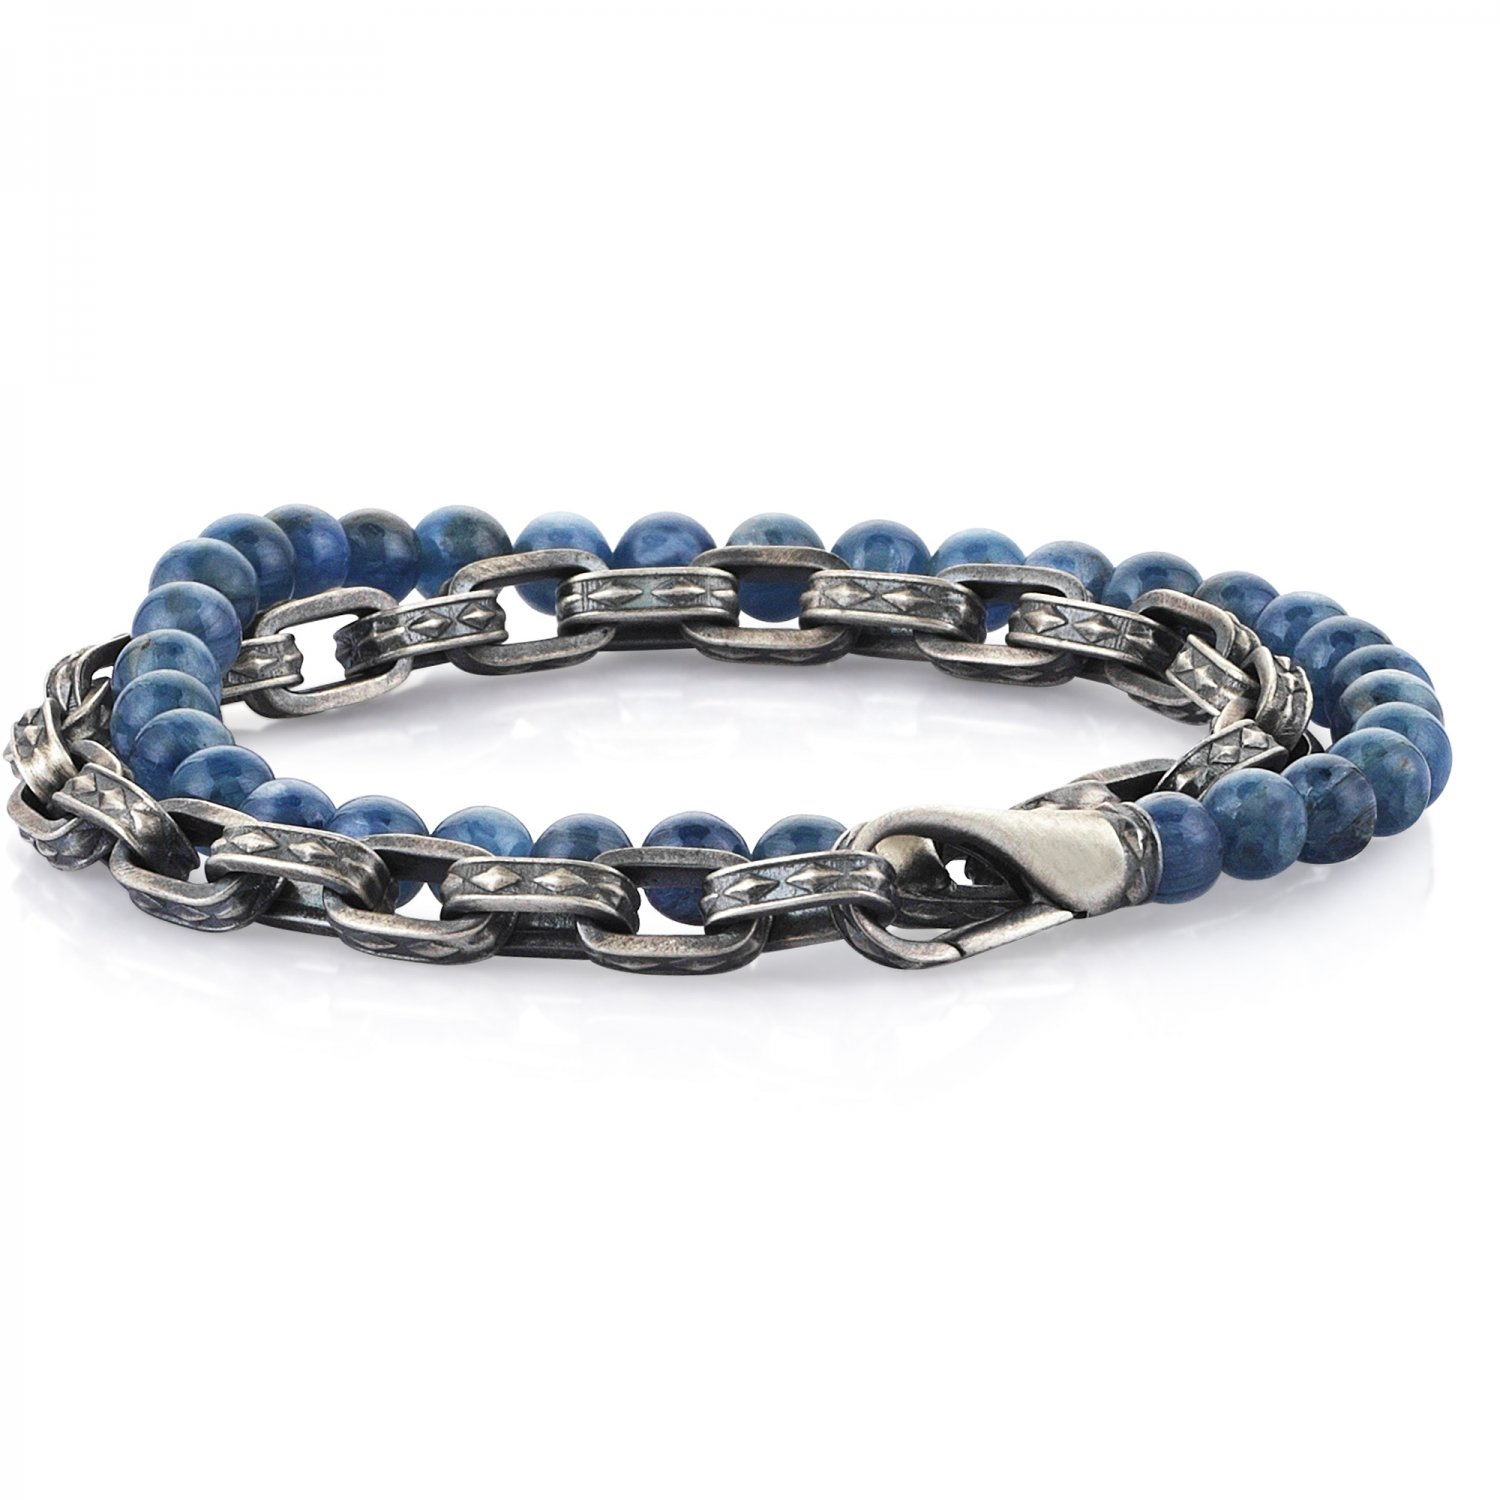 Oxidised Silver Cubic Chain Bracelet with Kıyanite Beads, 6.00mm